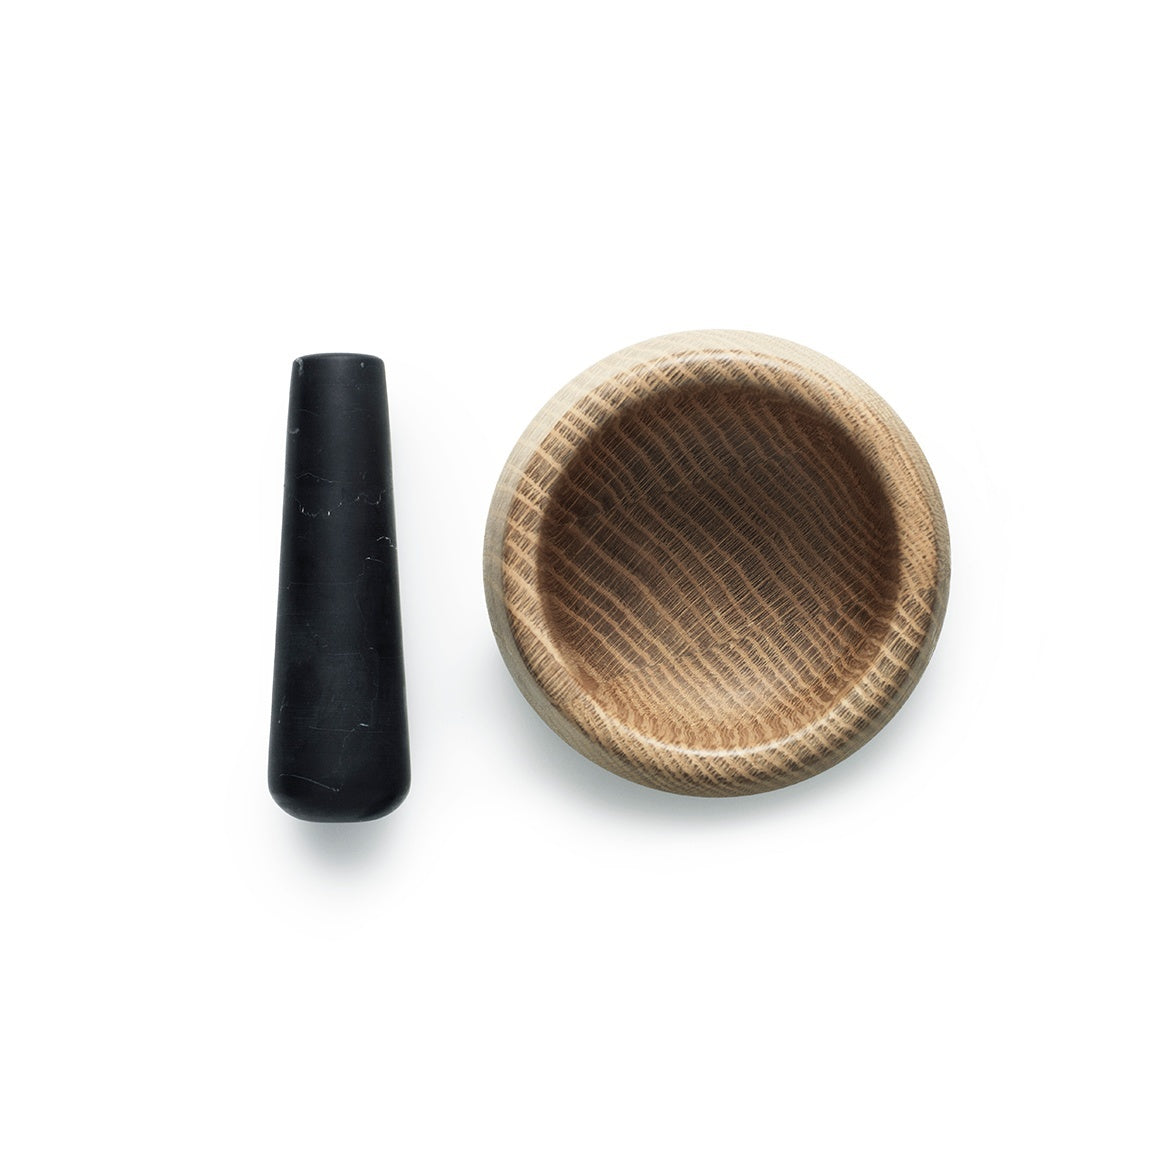 Normann Copenhagen Craft Mortar & Pestle - Eclectic Cool  - 4